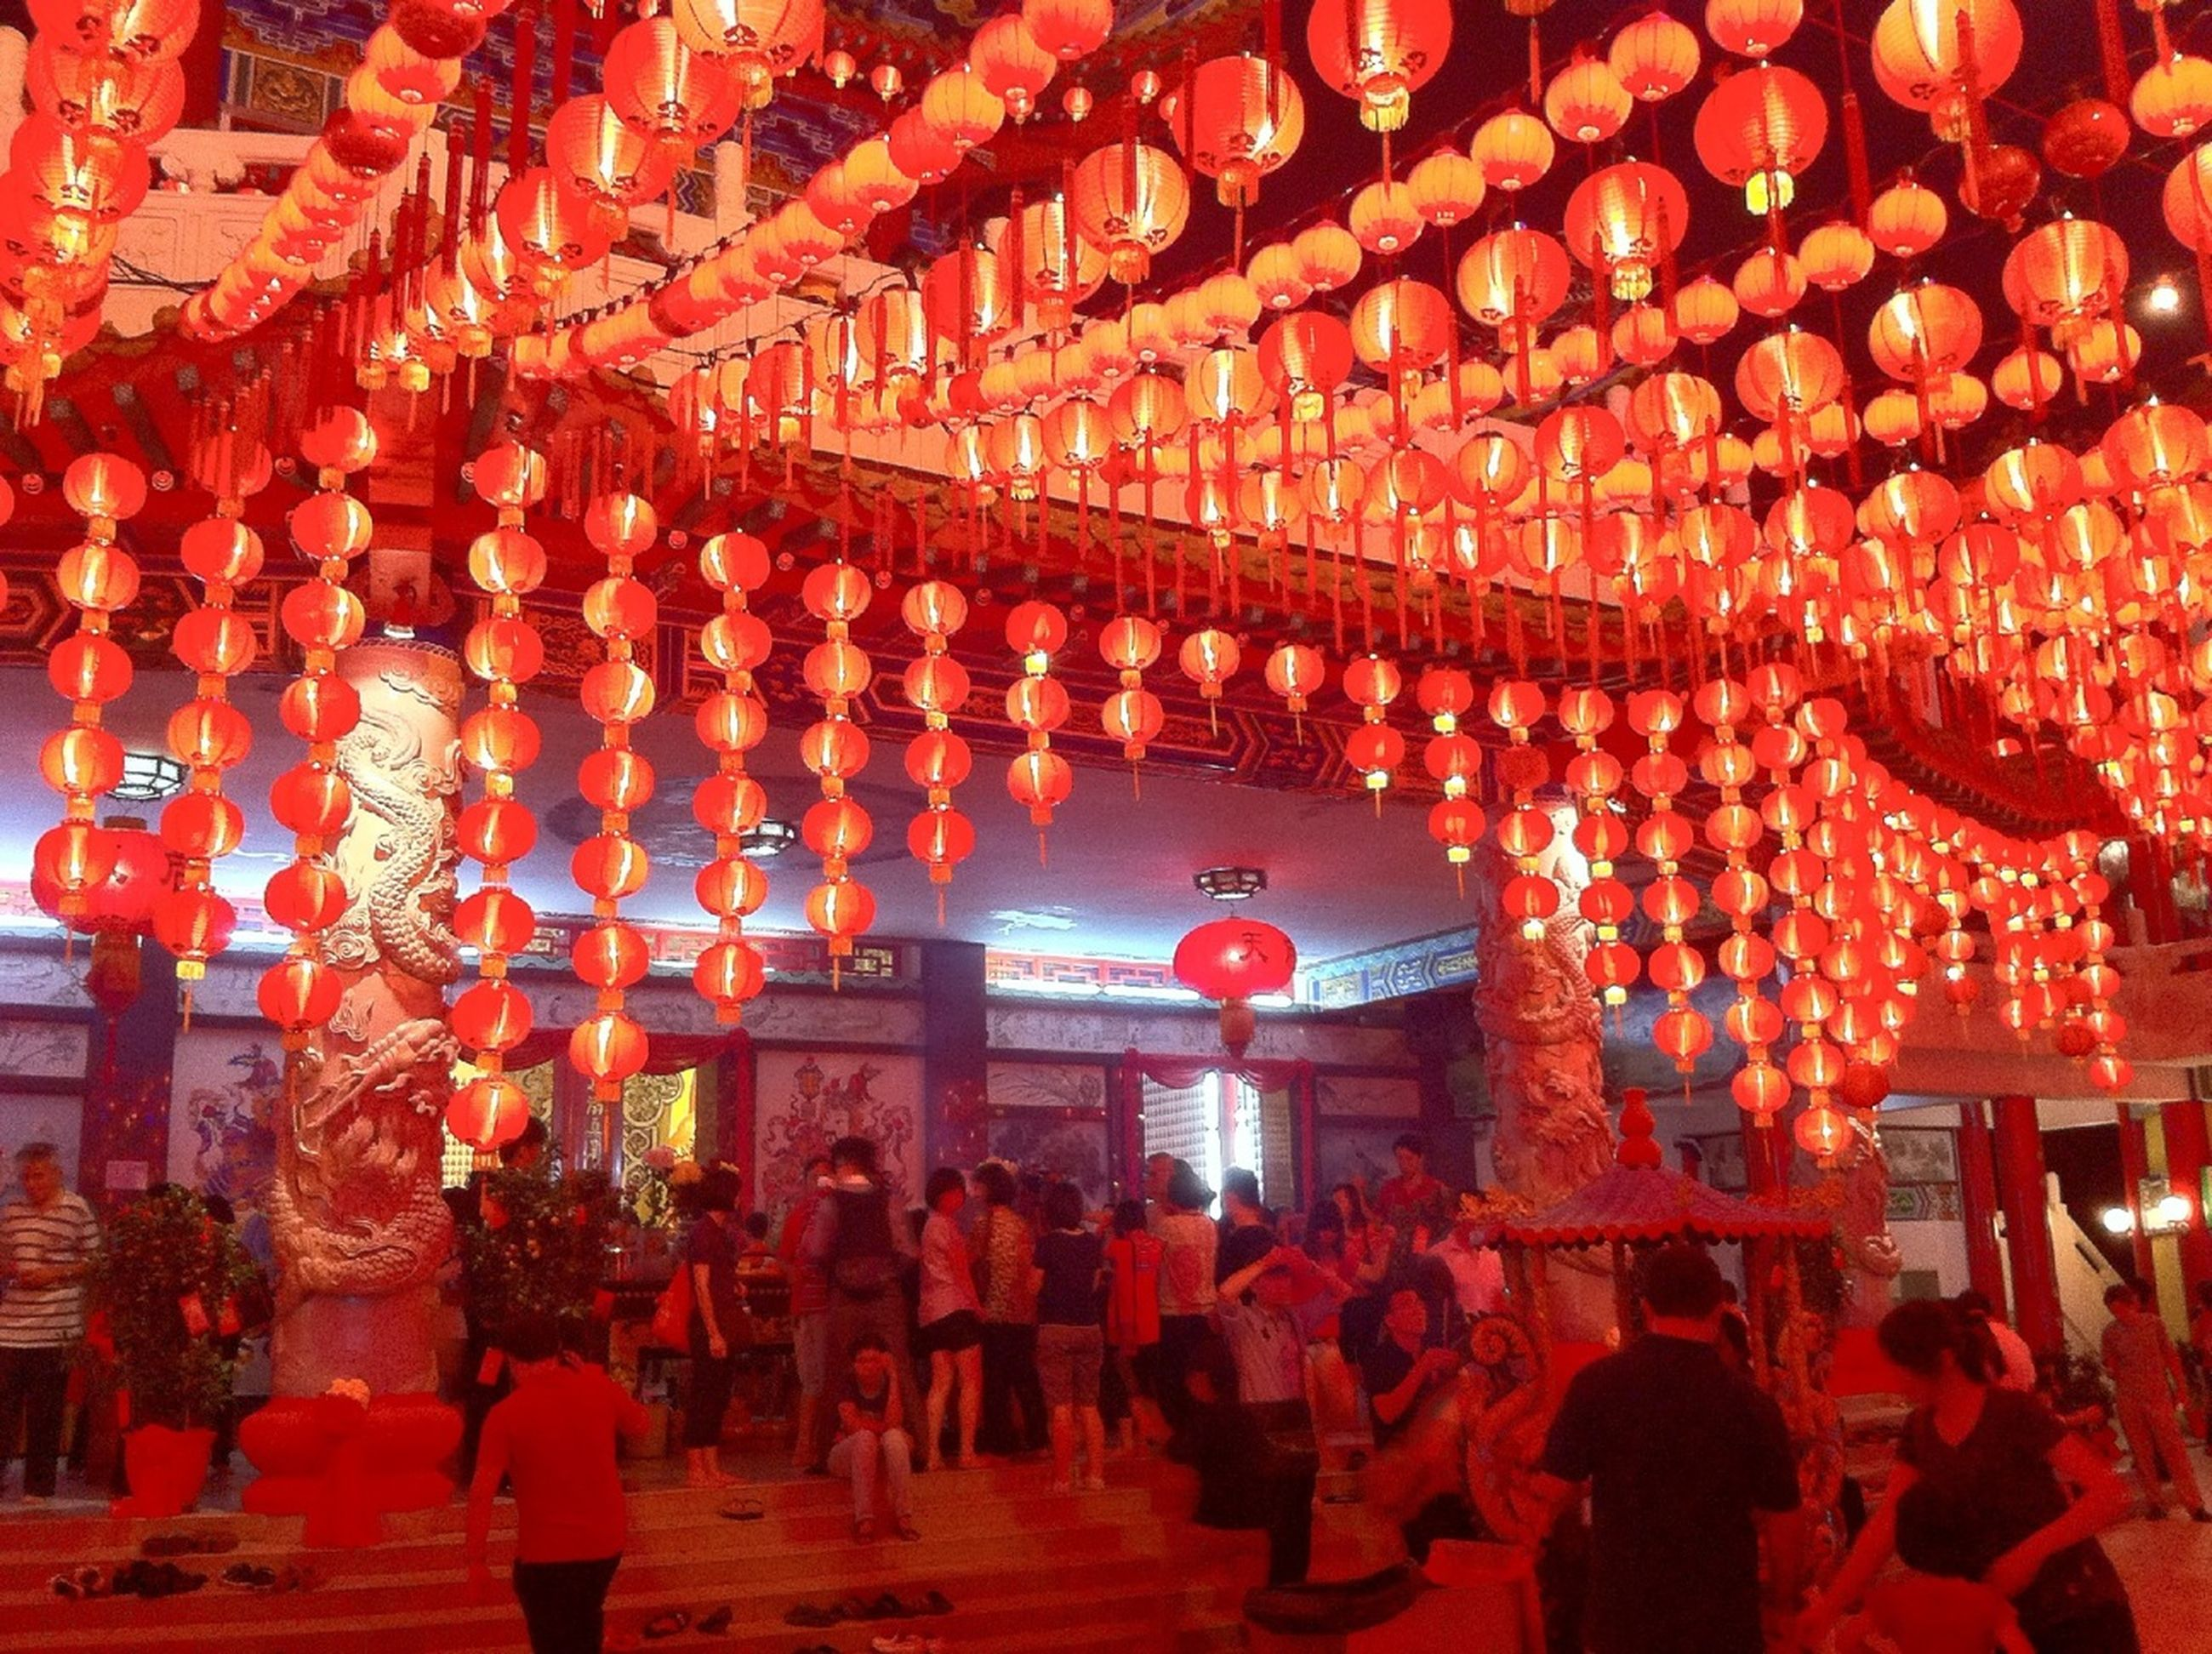 large group of people, illuminated, red, person, lifestyles, men, celebration, tradition, leisure activity, night, cultures, crowd, built structure, architecture, lighting equipment, lantern, decoration, culture, hanging